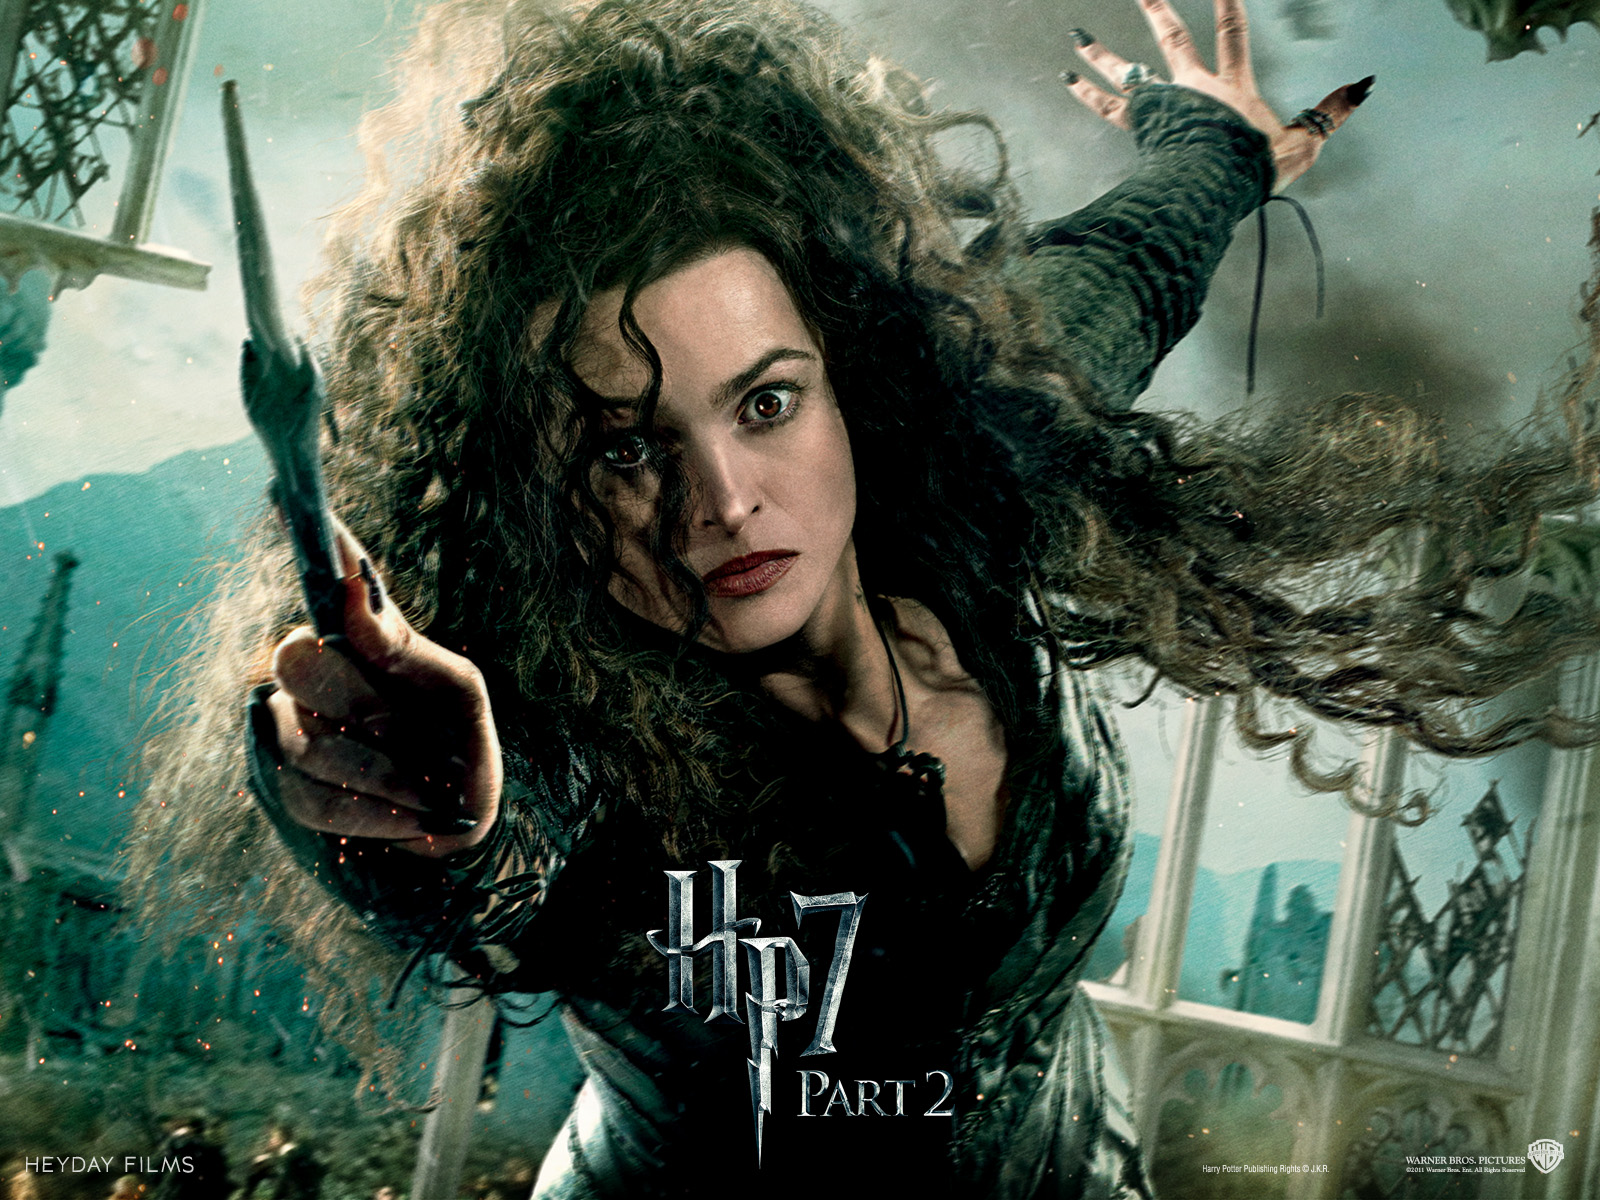 http://3.bp.blogspot.com/-YIvUxOAbc28/TkRIim0SgaI/AAAAAAAAFVo/HYAZw3uJuxw/s1600/Helena_Bonham_Carter_in_Harry_Potter_and_the_Deathly_Hallows%252B_Part_2_Wallpaper_13_1024.jpg